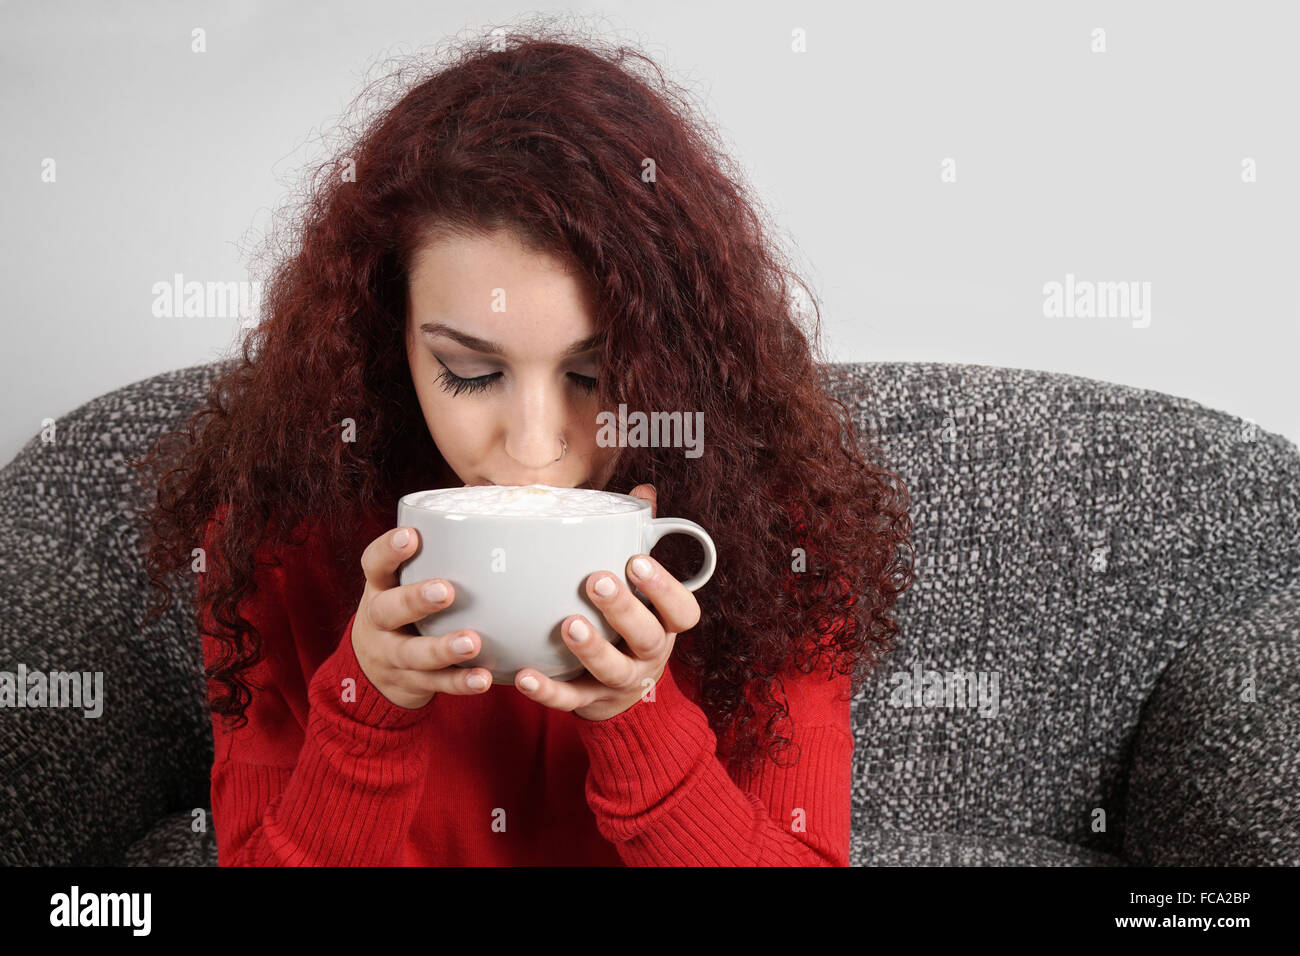 girl sipping from large cup of coffee - Stock Image